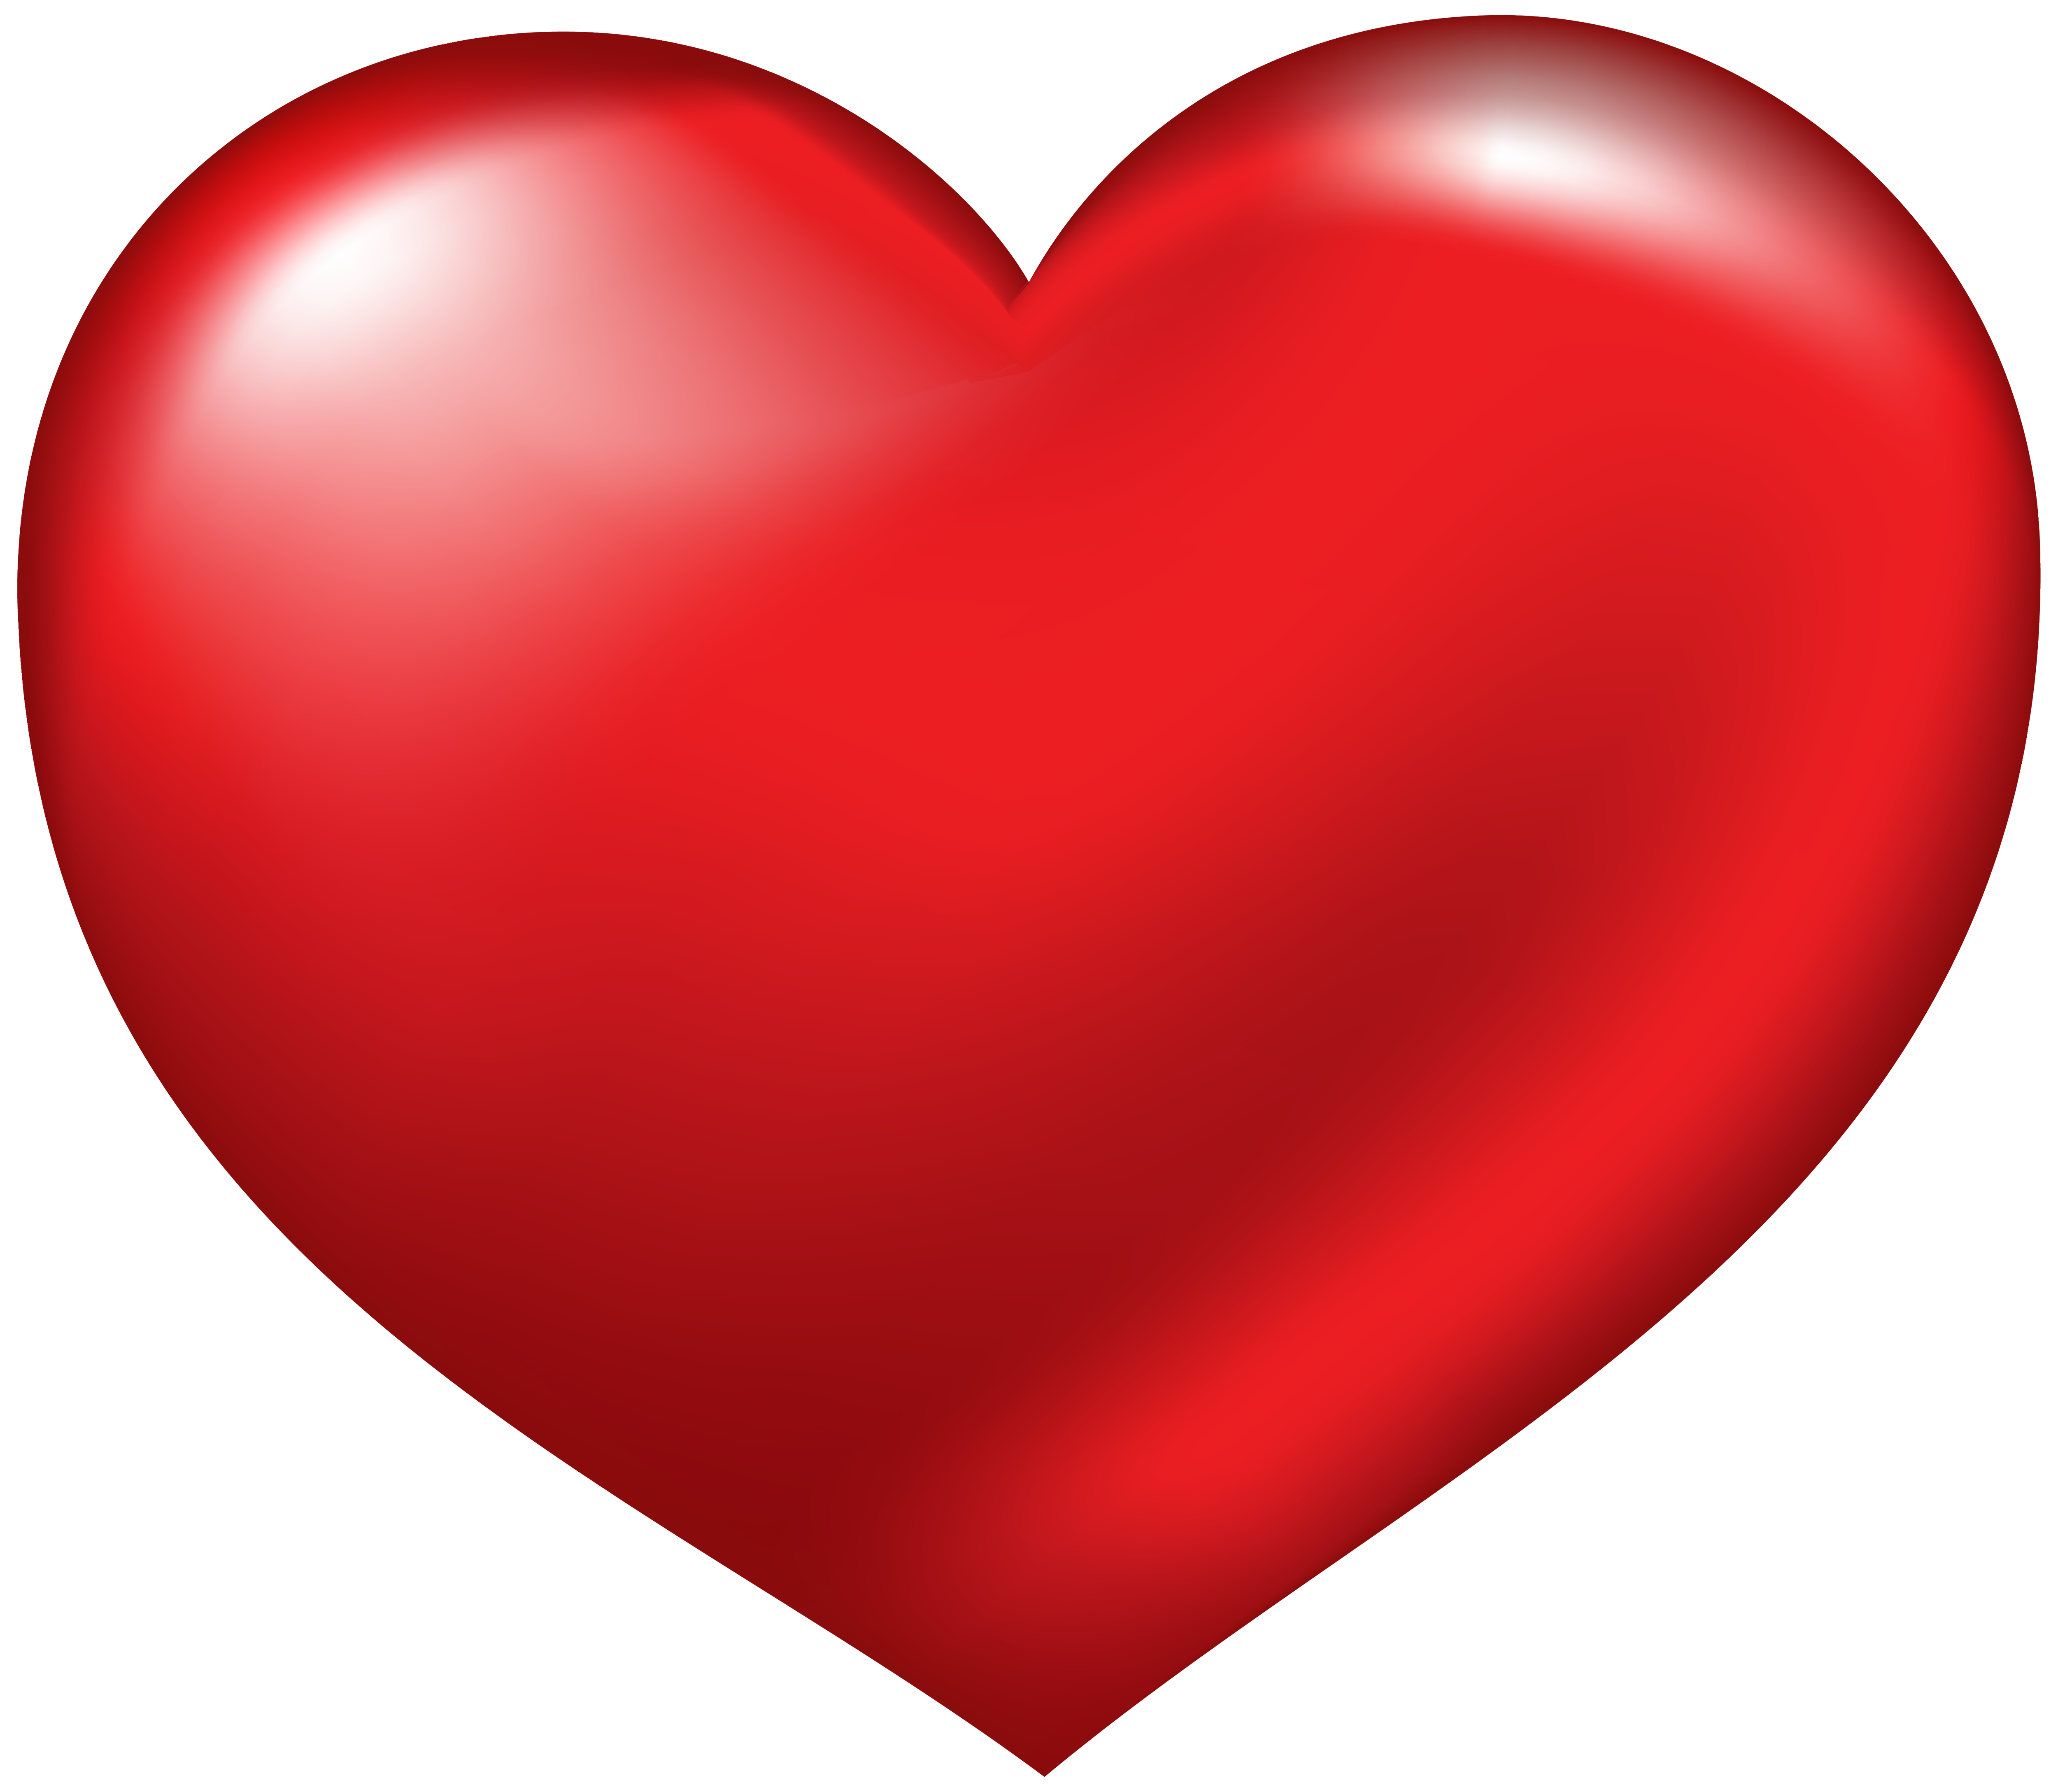 Heart clipart best web. Red hearts png clipart black and white download